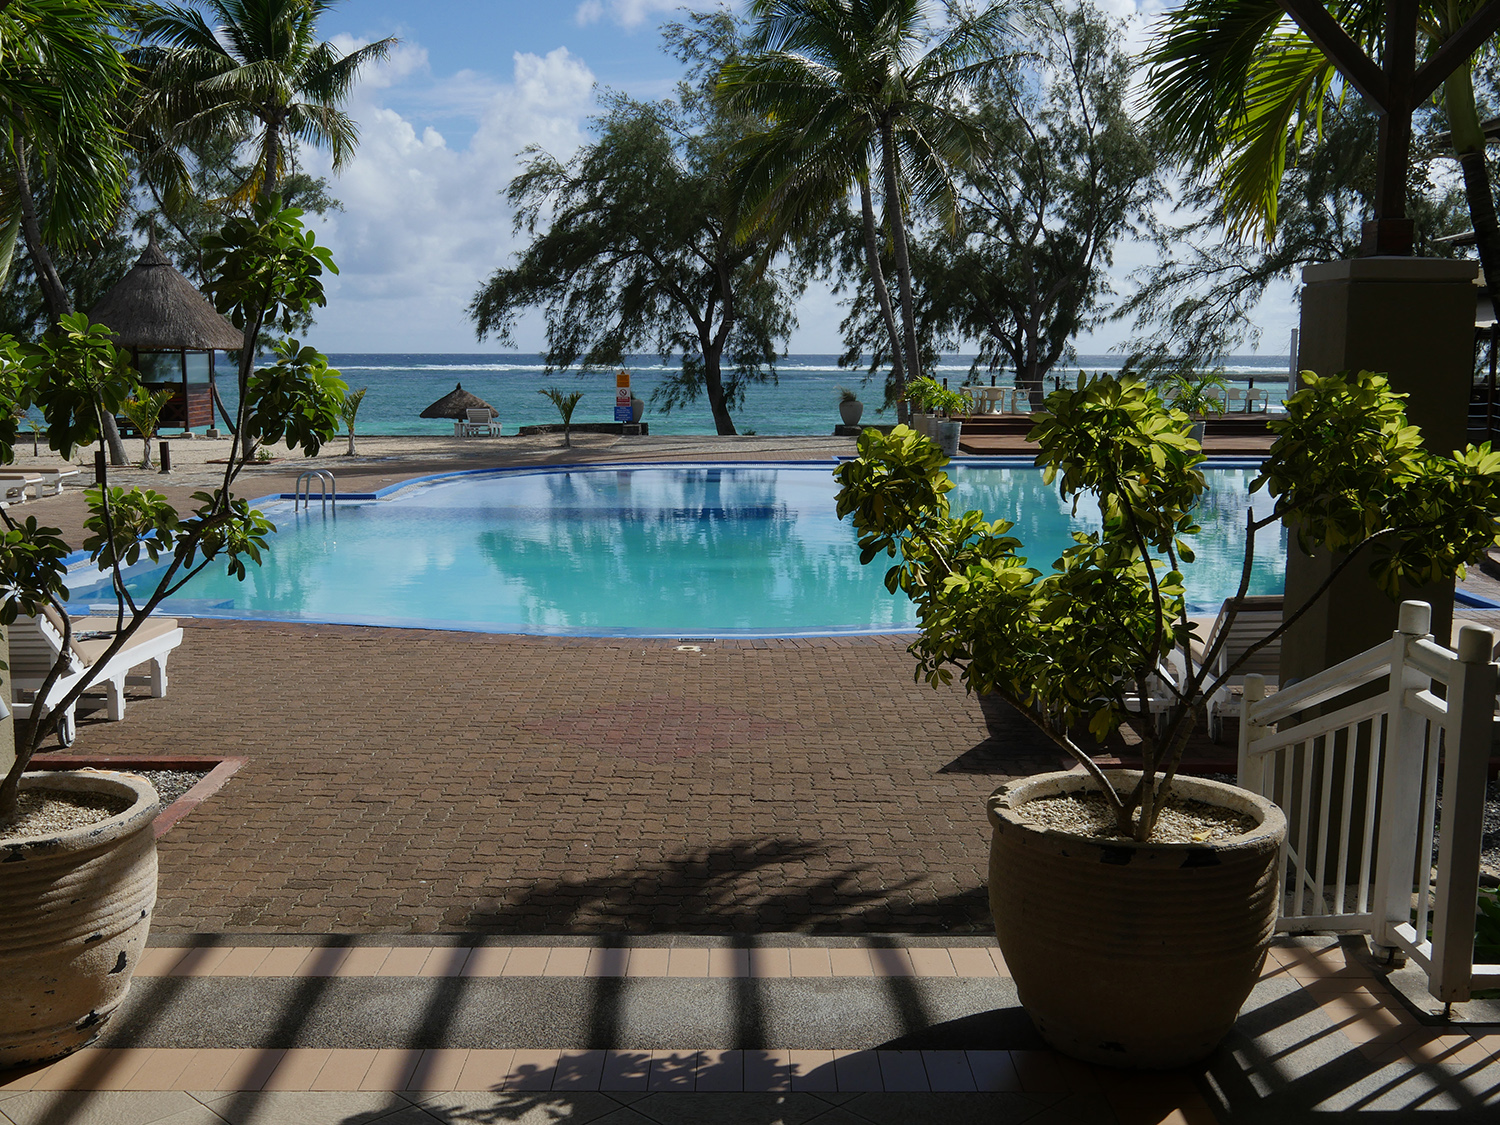 Pool and Sea Cotton Bay Hotel Rodrigues Island vacation guide